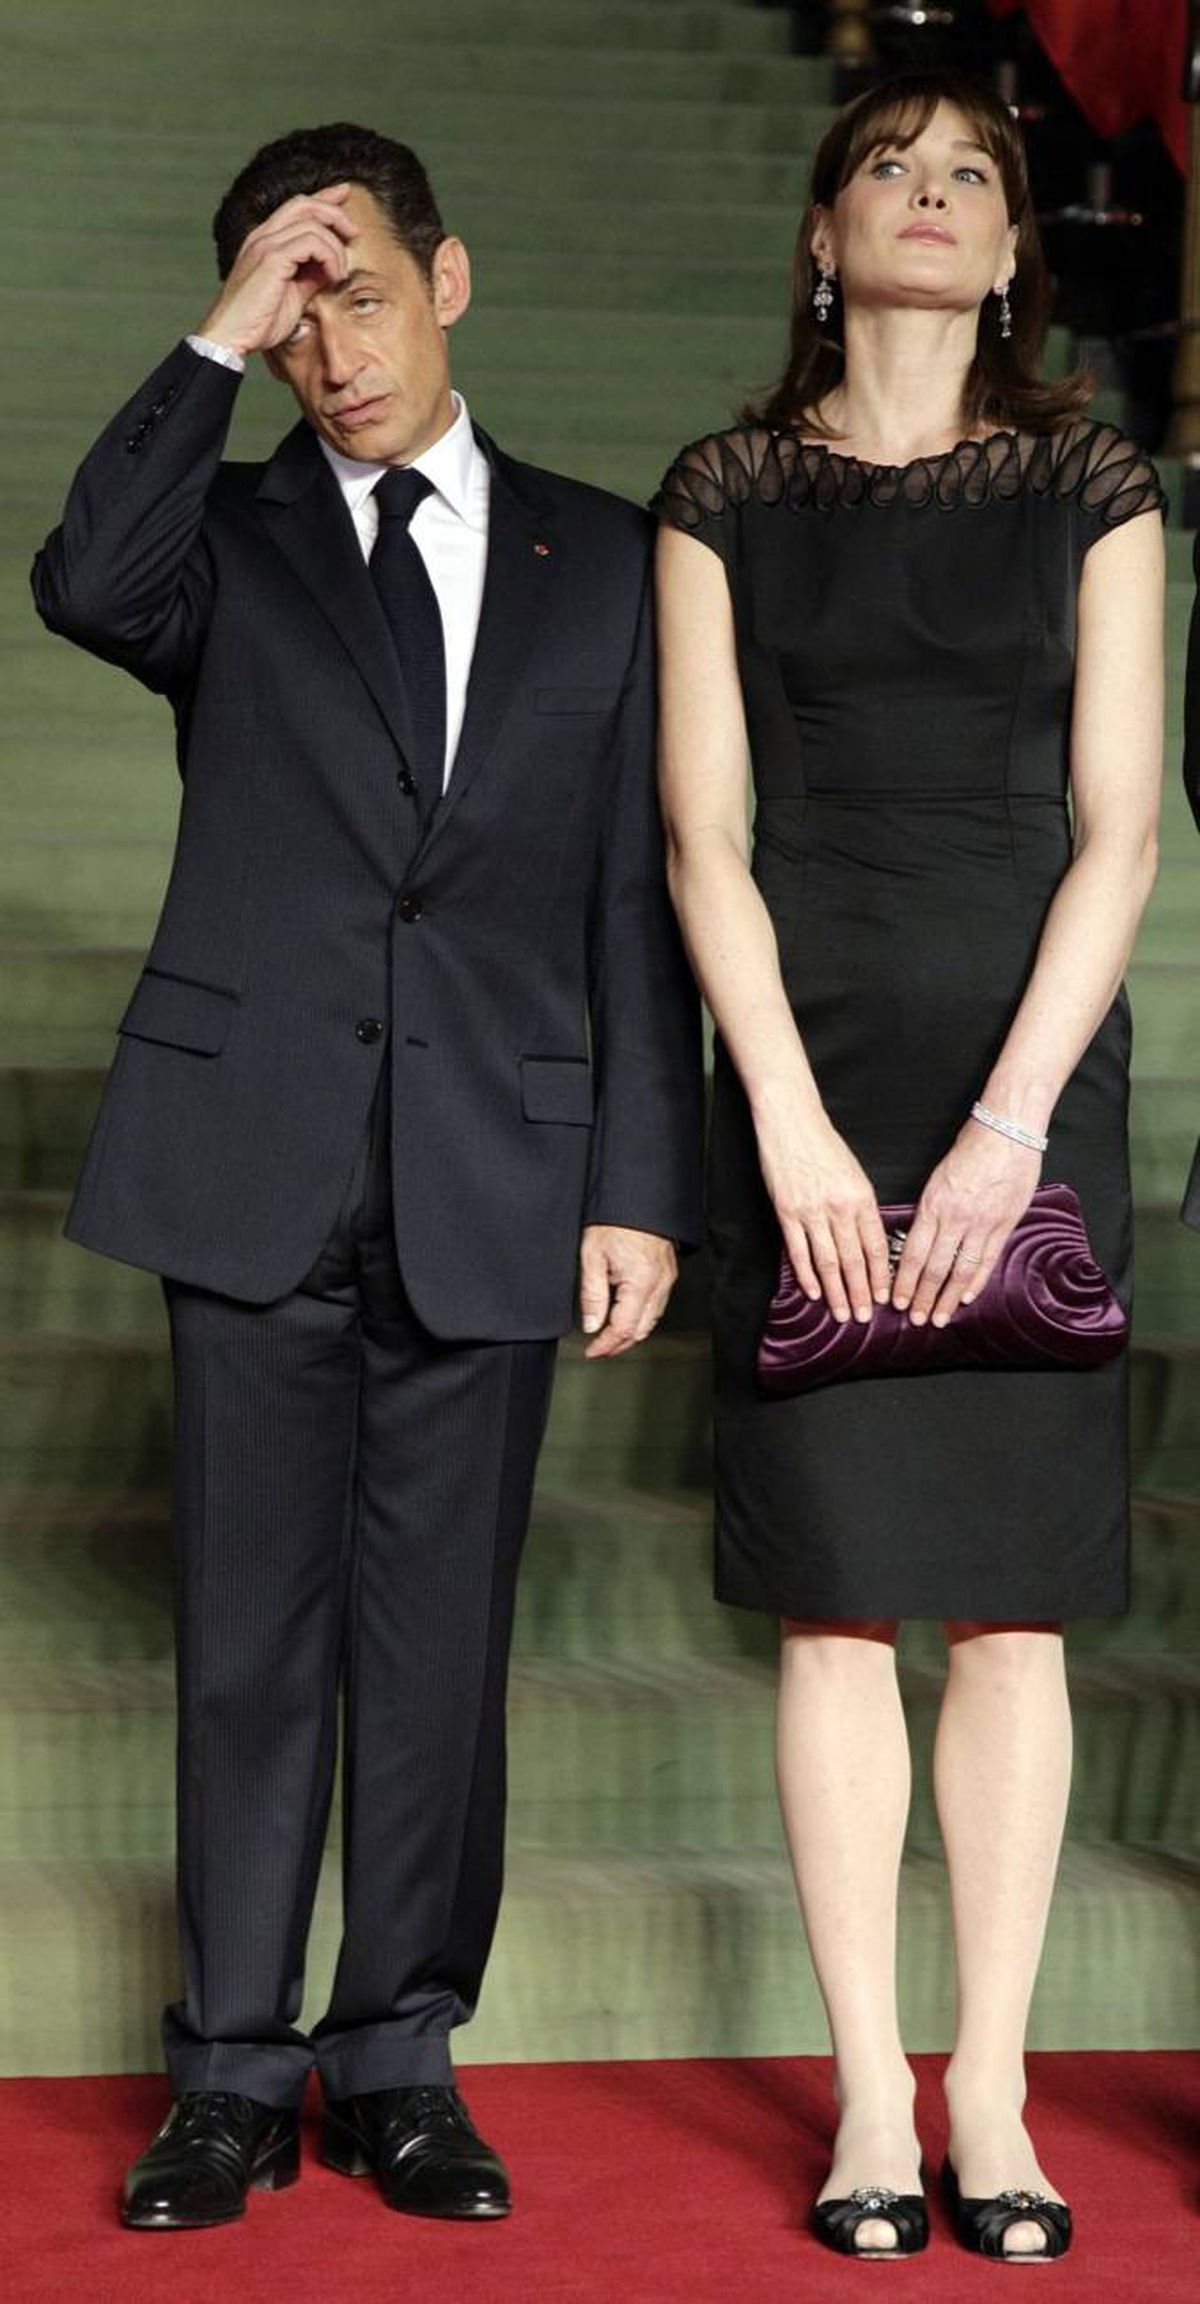 French President Nicolas Sarkozy and French first Lady Carla Bruni